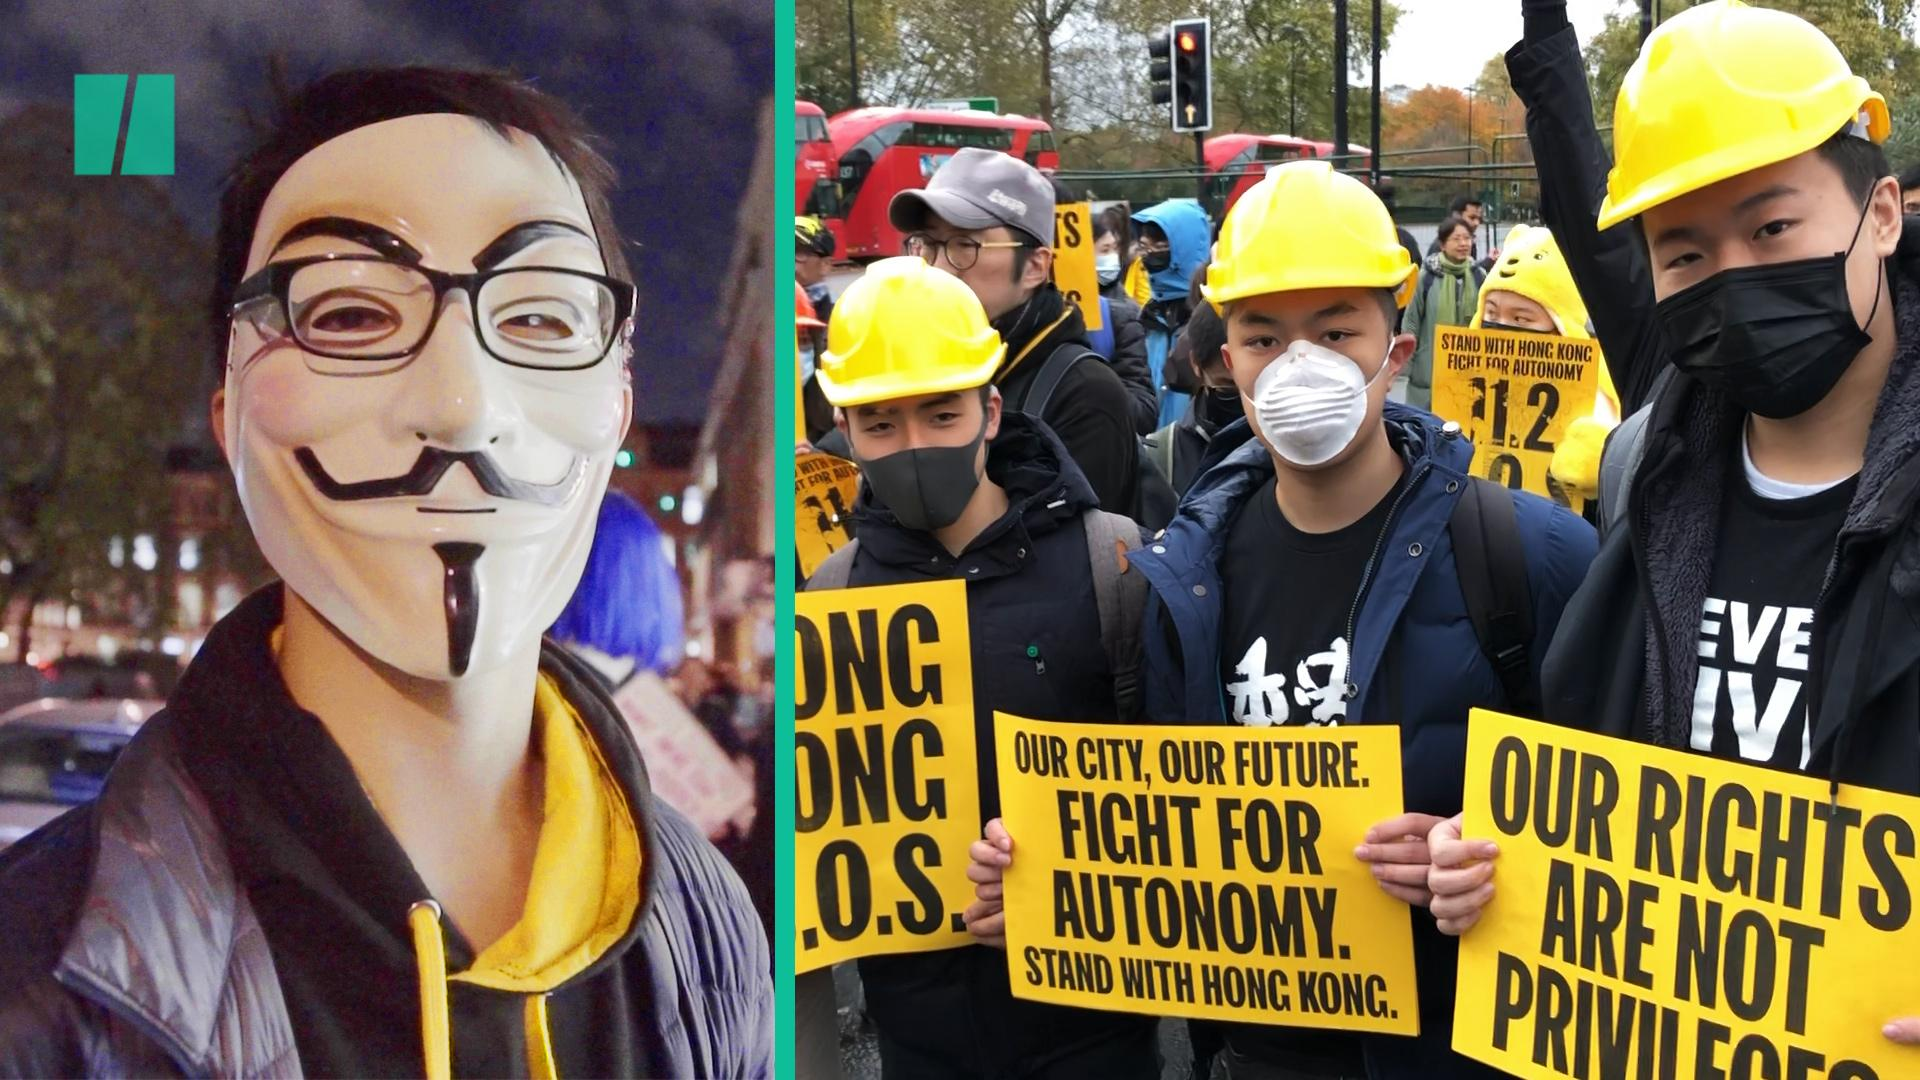 Hong Kong Students Protesting From The UK Want The UK Gov To Stand With Pro-Democracy Movement